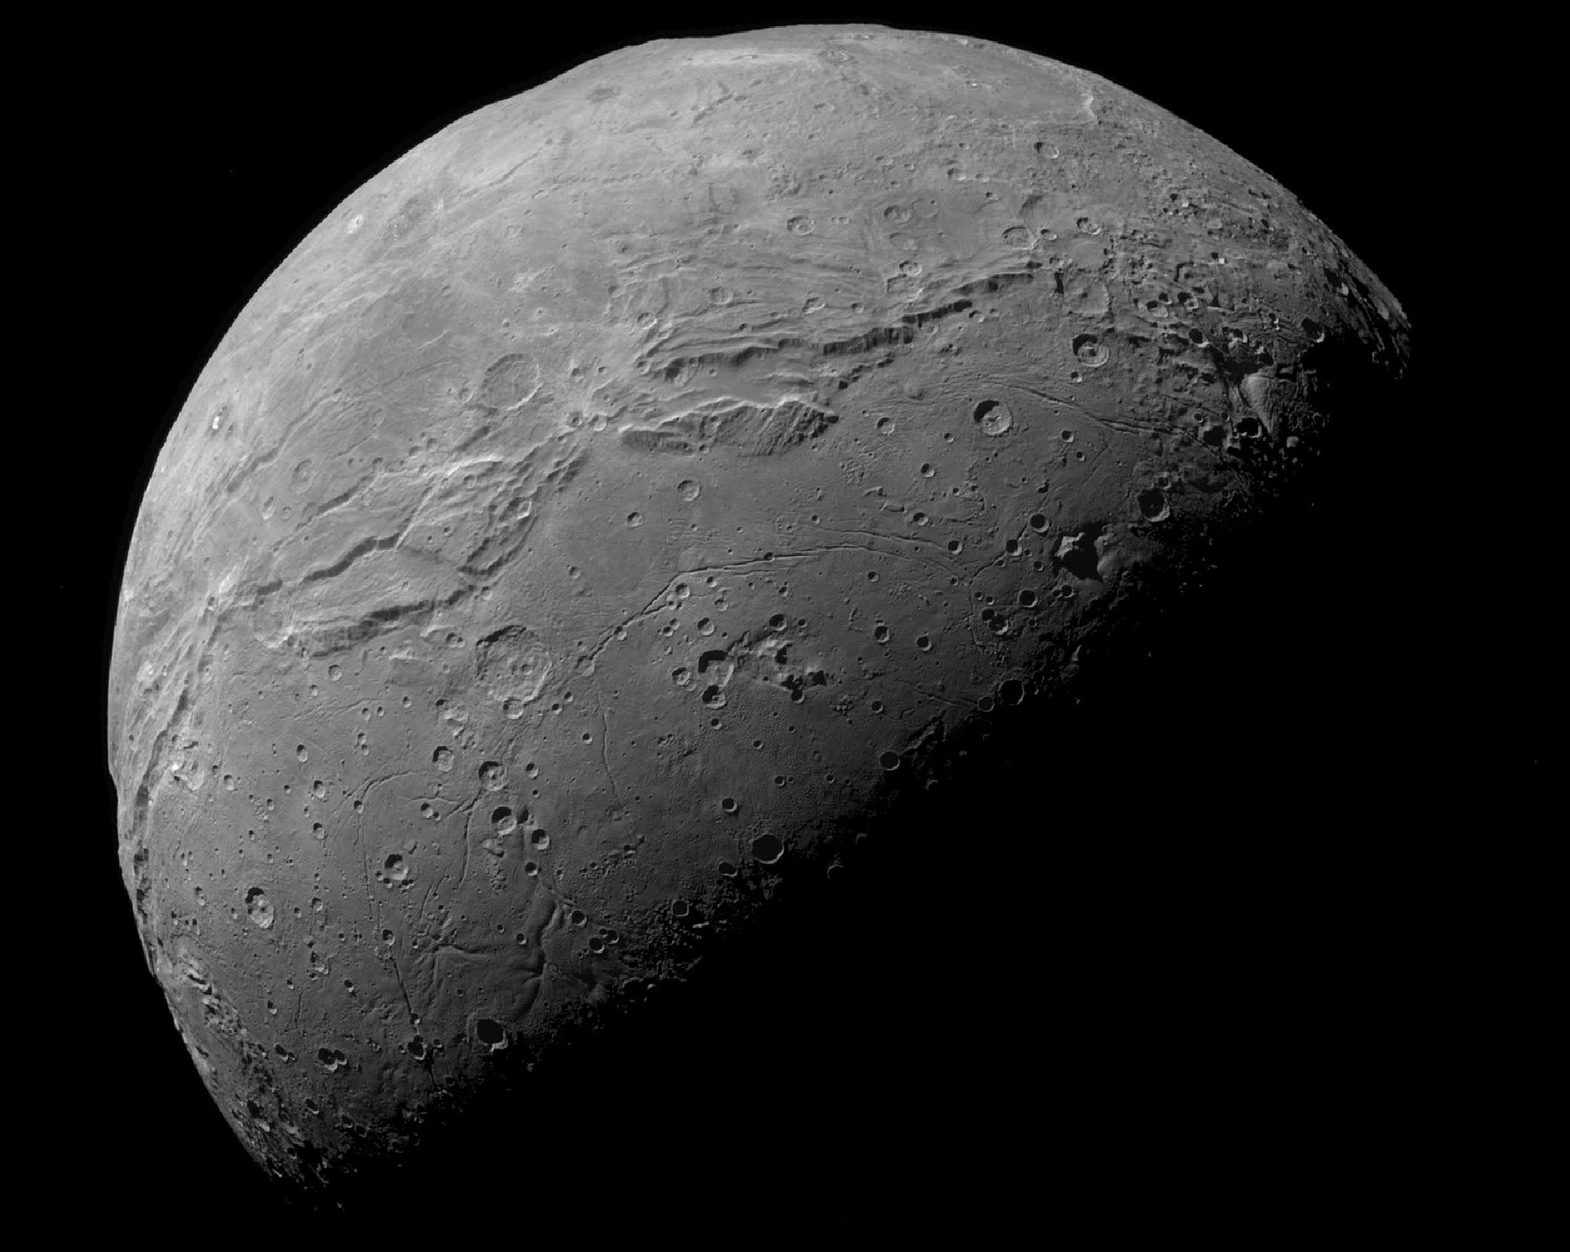 Pluto's moon Charon has a clear divide between its northern and southern hemispheres, marked by a line of ridges. Photo Credit: NASA/Johns Hopkins University Applied Physics Laboratory/Southwest Research Institute